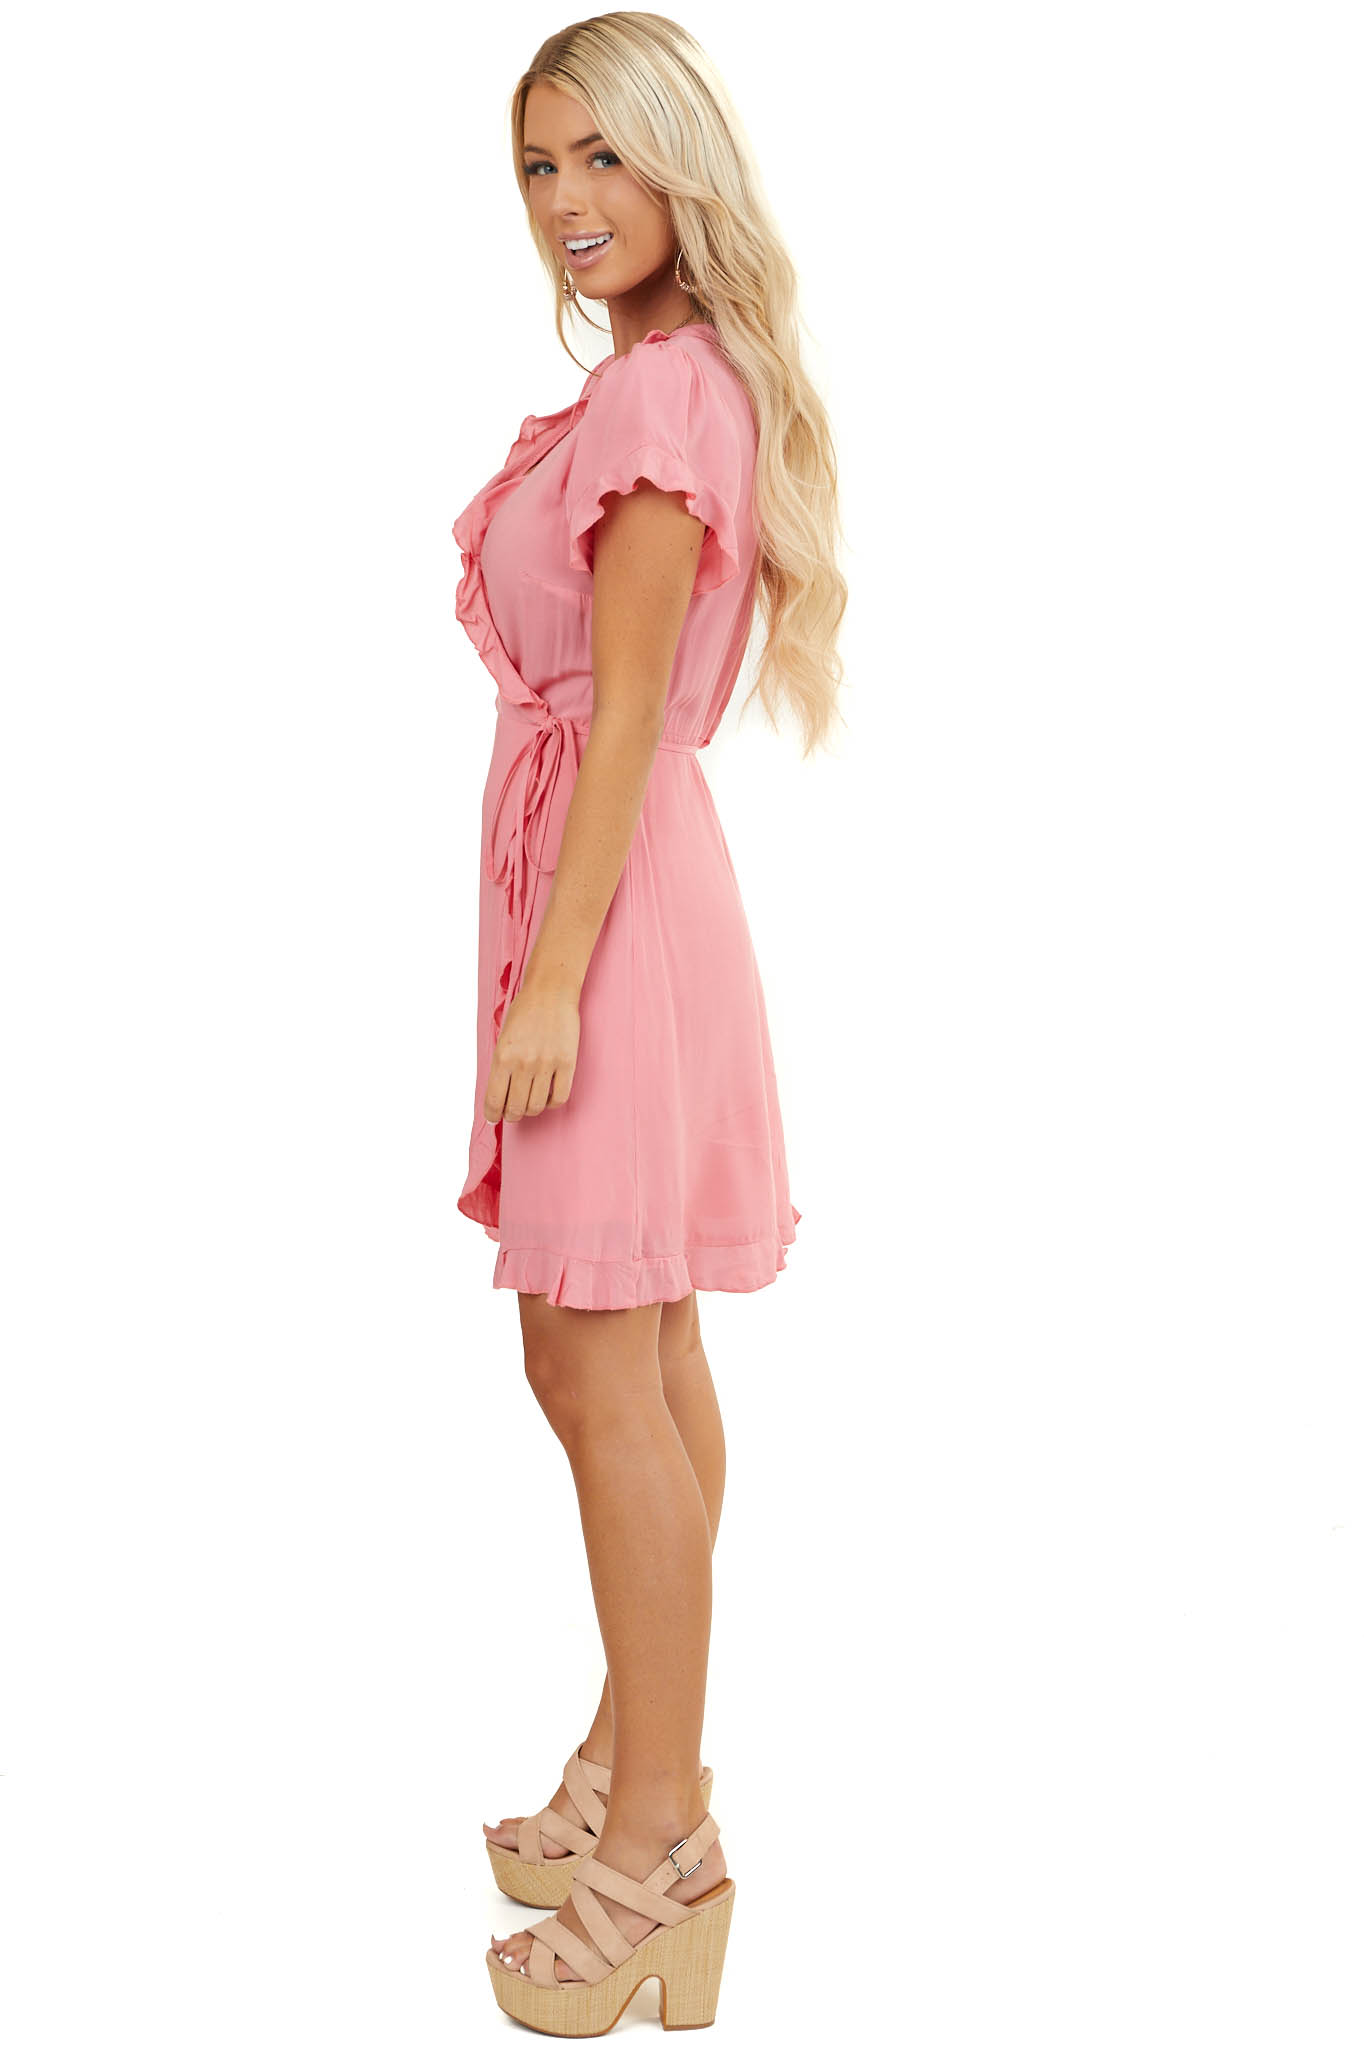 Bright Pink Short Sleeve Wrap Dress with Ruffle Details